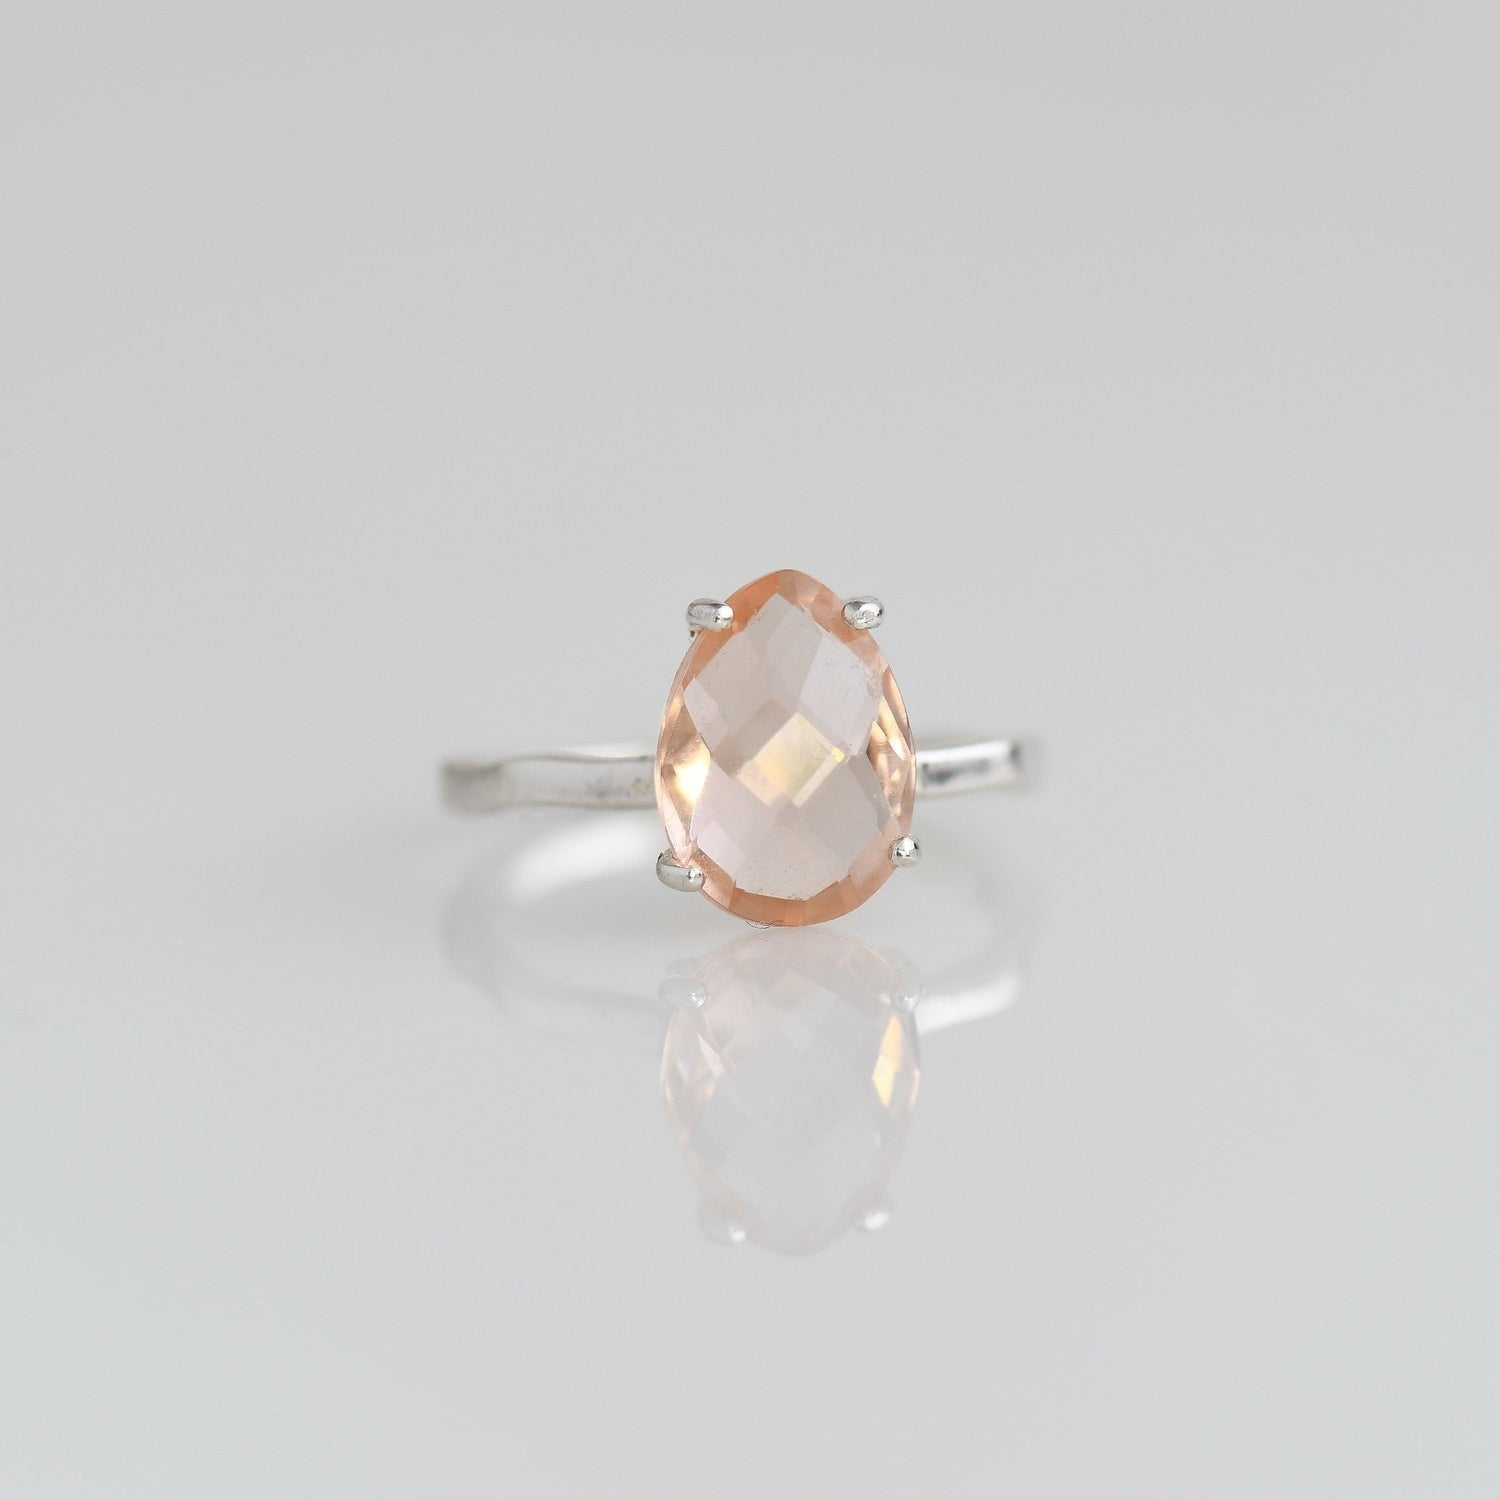 Morganite ring, Blush ring, Wedding ring, Bridal gift, Prongs set ring, Birthstone ring, Natural gemstone ring, Peach Gemstone ring